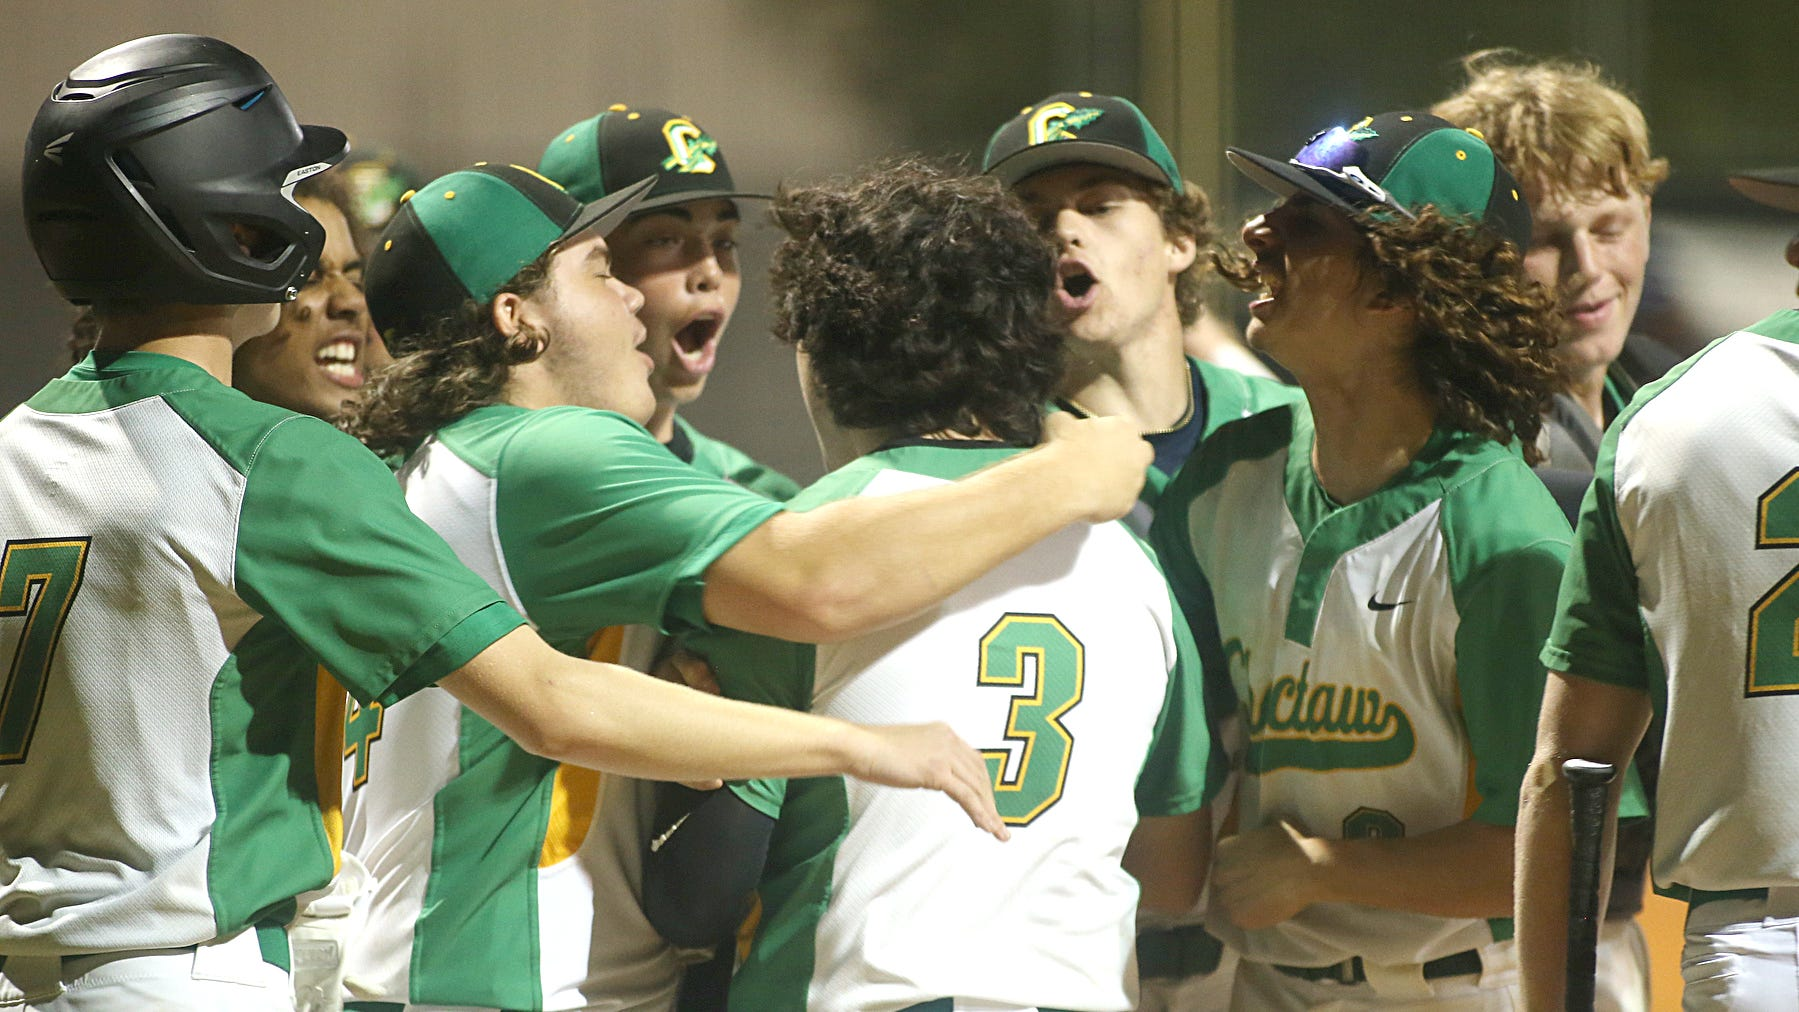 Choctaw- Fort Walton Beach rivalry baseball game